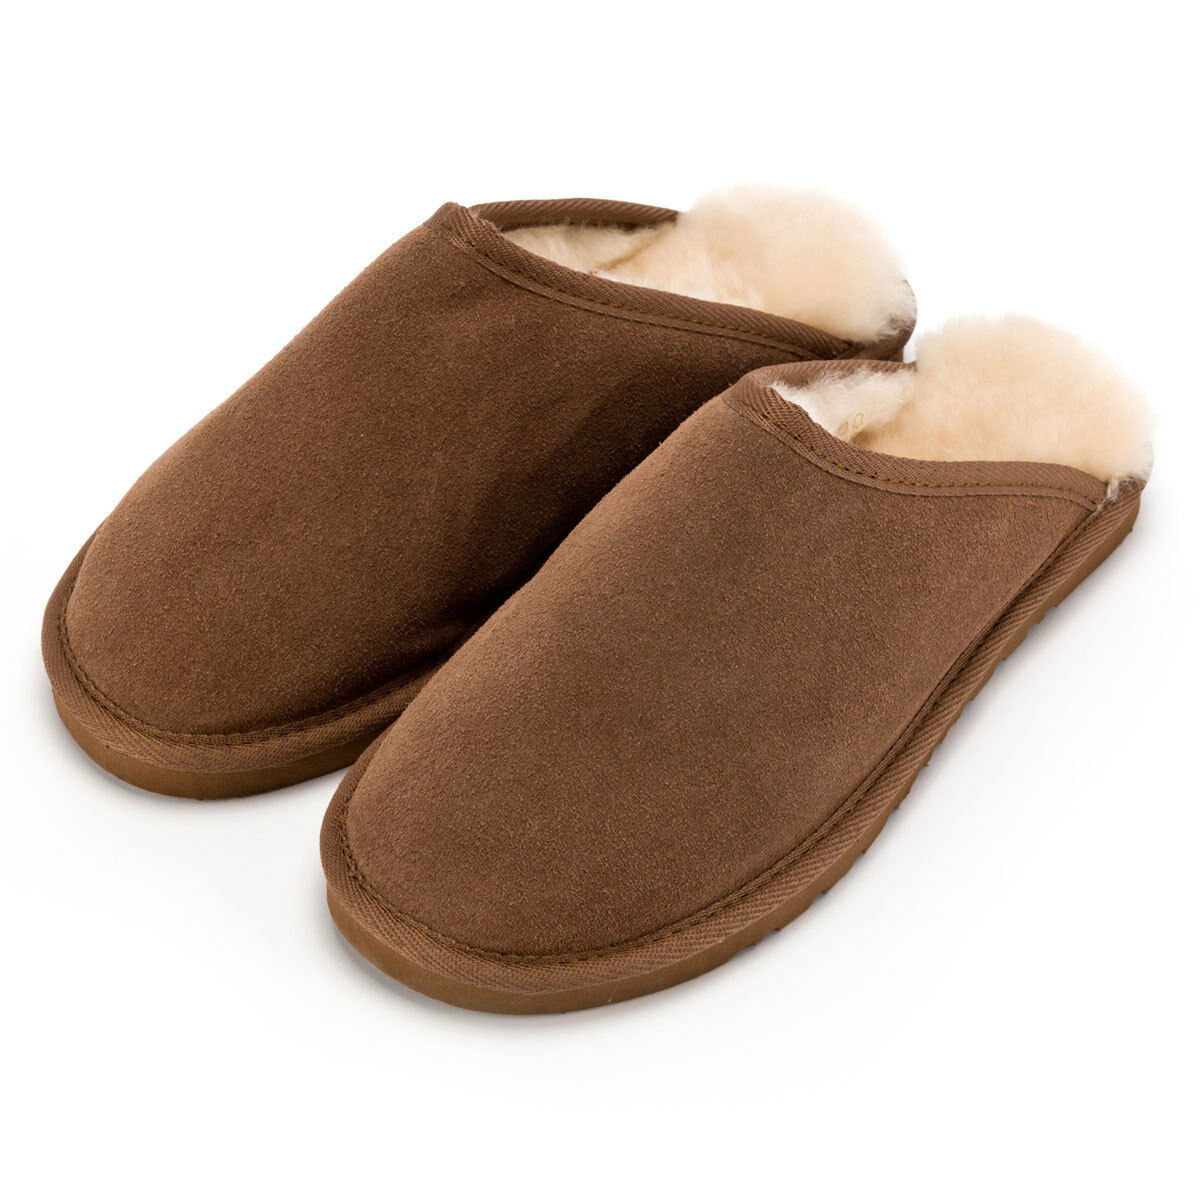 Deluxe Mens Hard Sole Sheepskin Slipper Mule - Chestnut - Free Returns